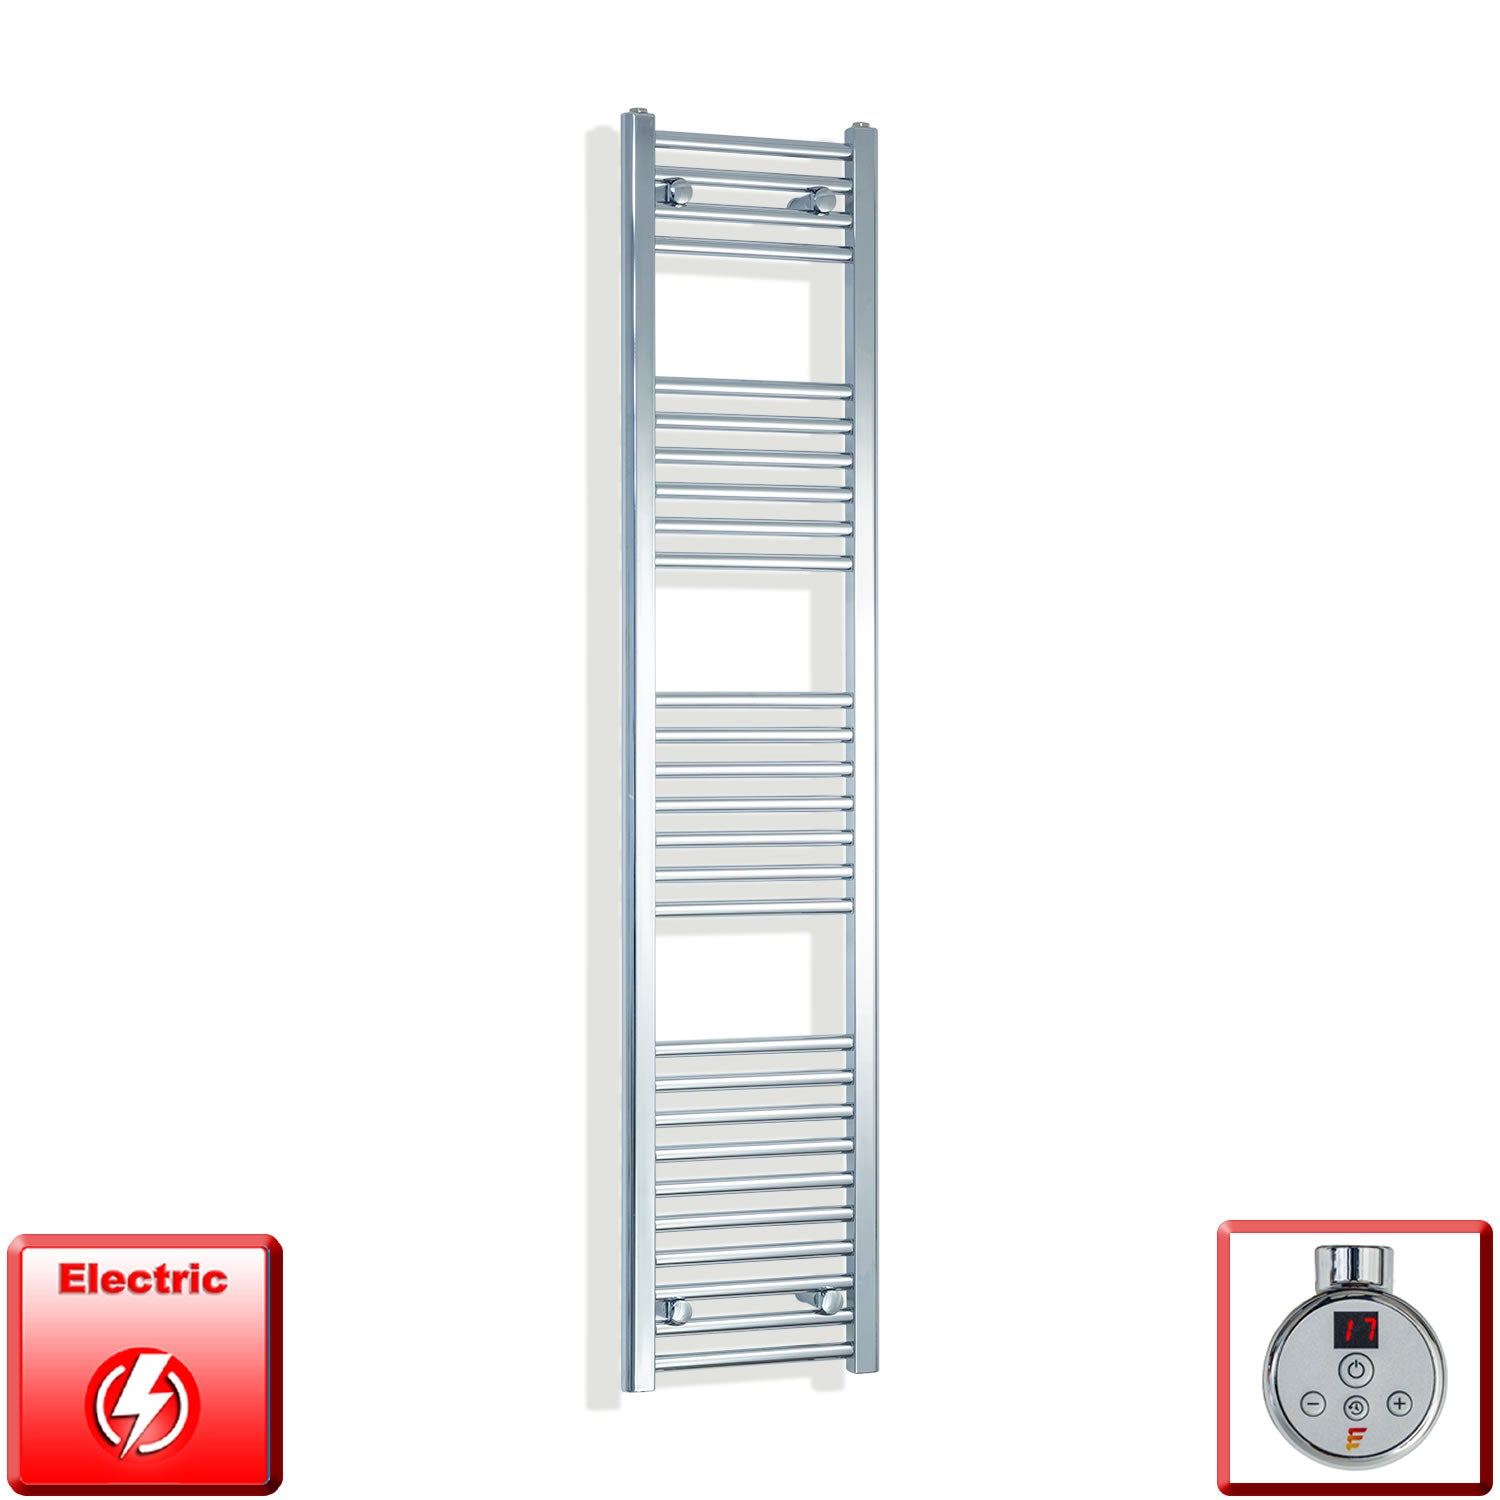 350mm Wide 1600mm High Pre-Filled Chrome Electric Towel Rail Radiator With Thermostatic DIGI Element